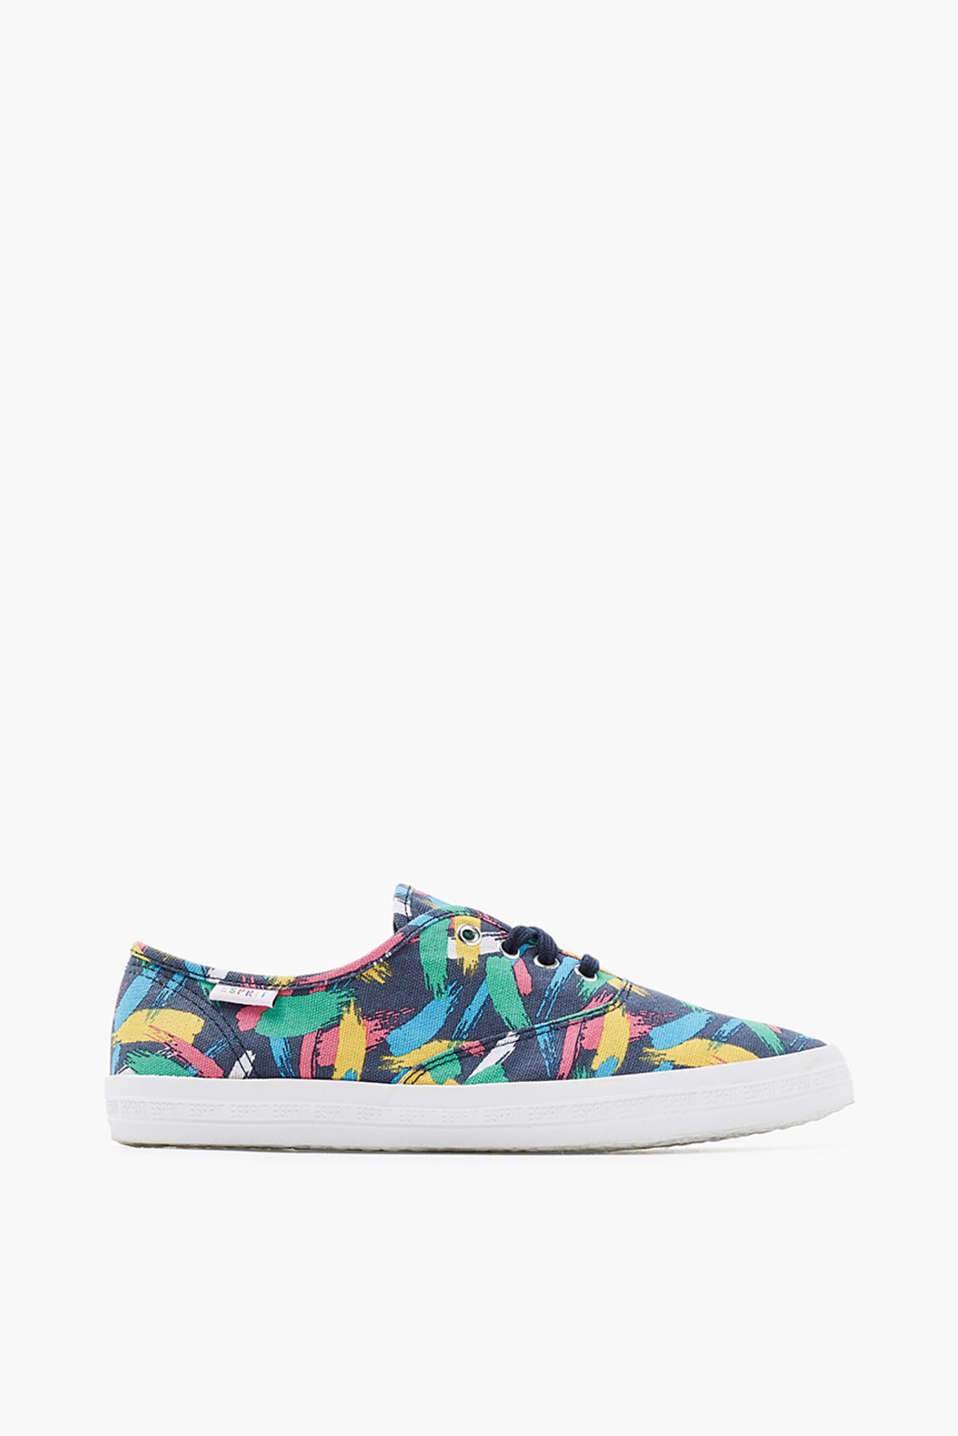 Retro Collection - Bright print trainers with a logo sole, in cotton canvas